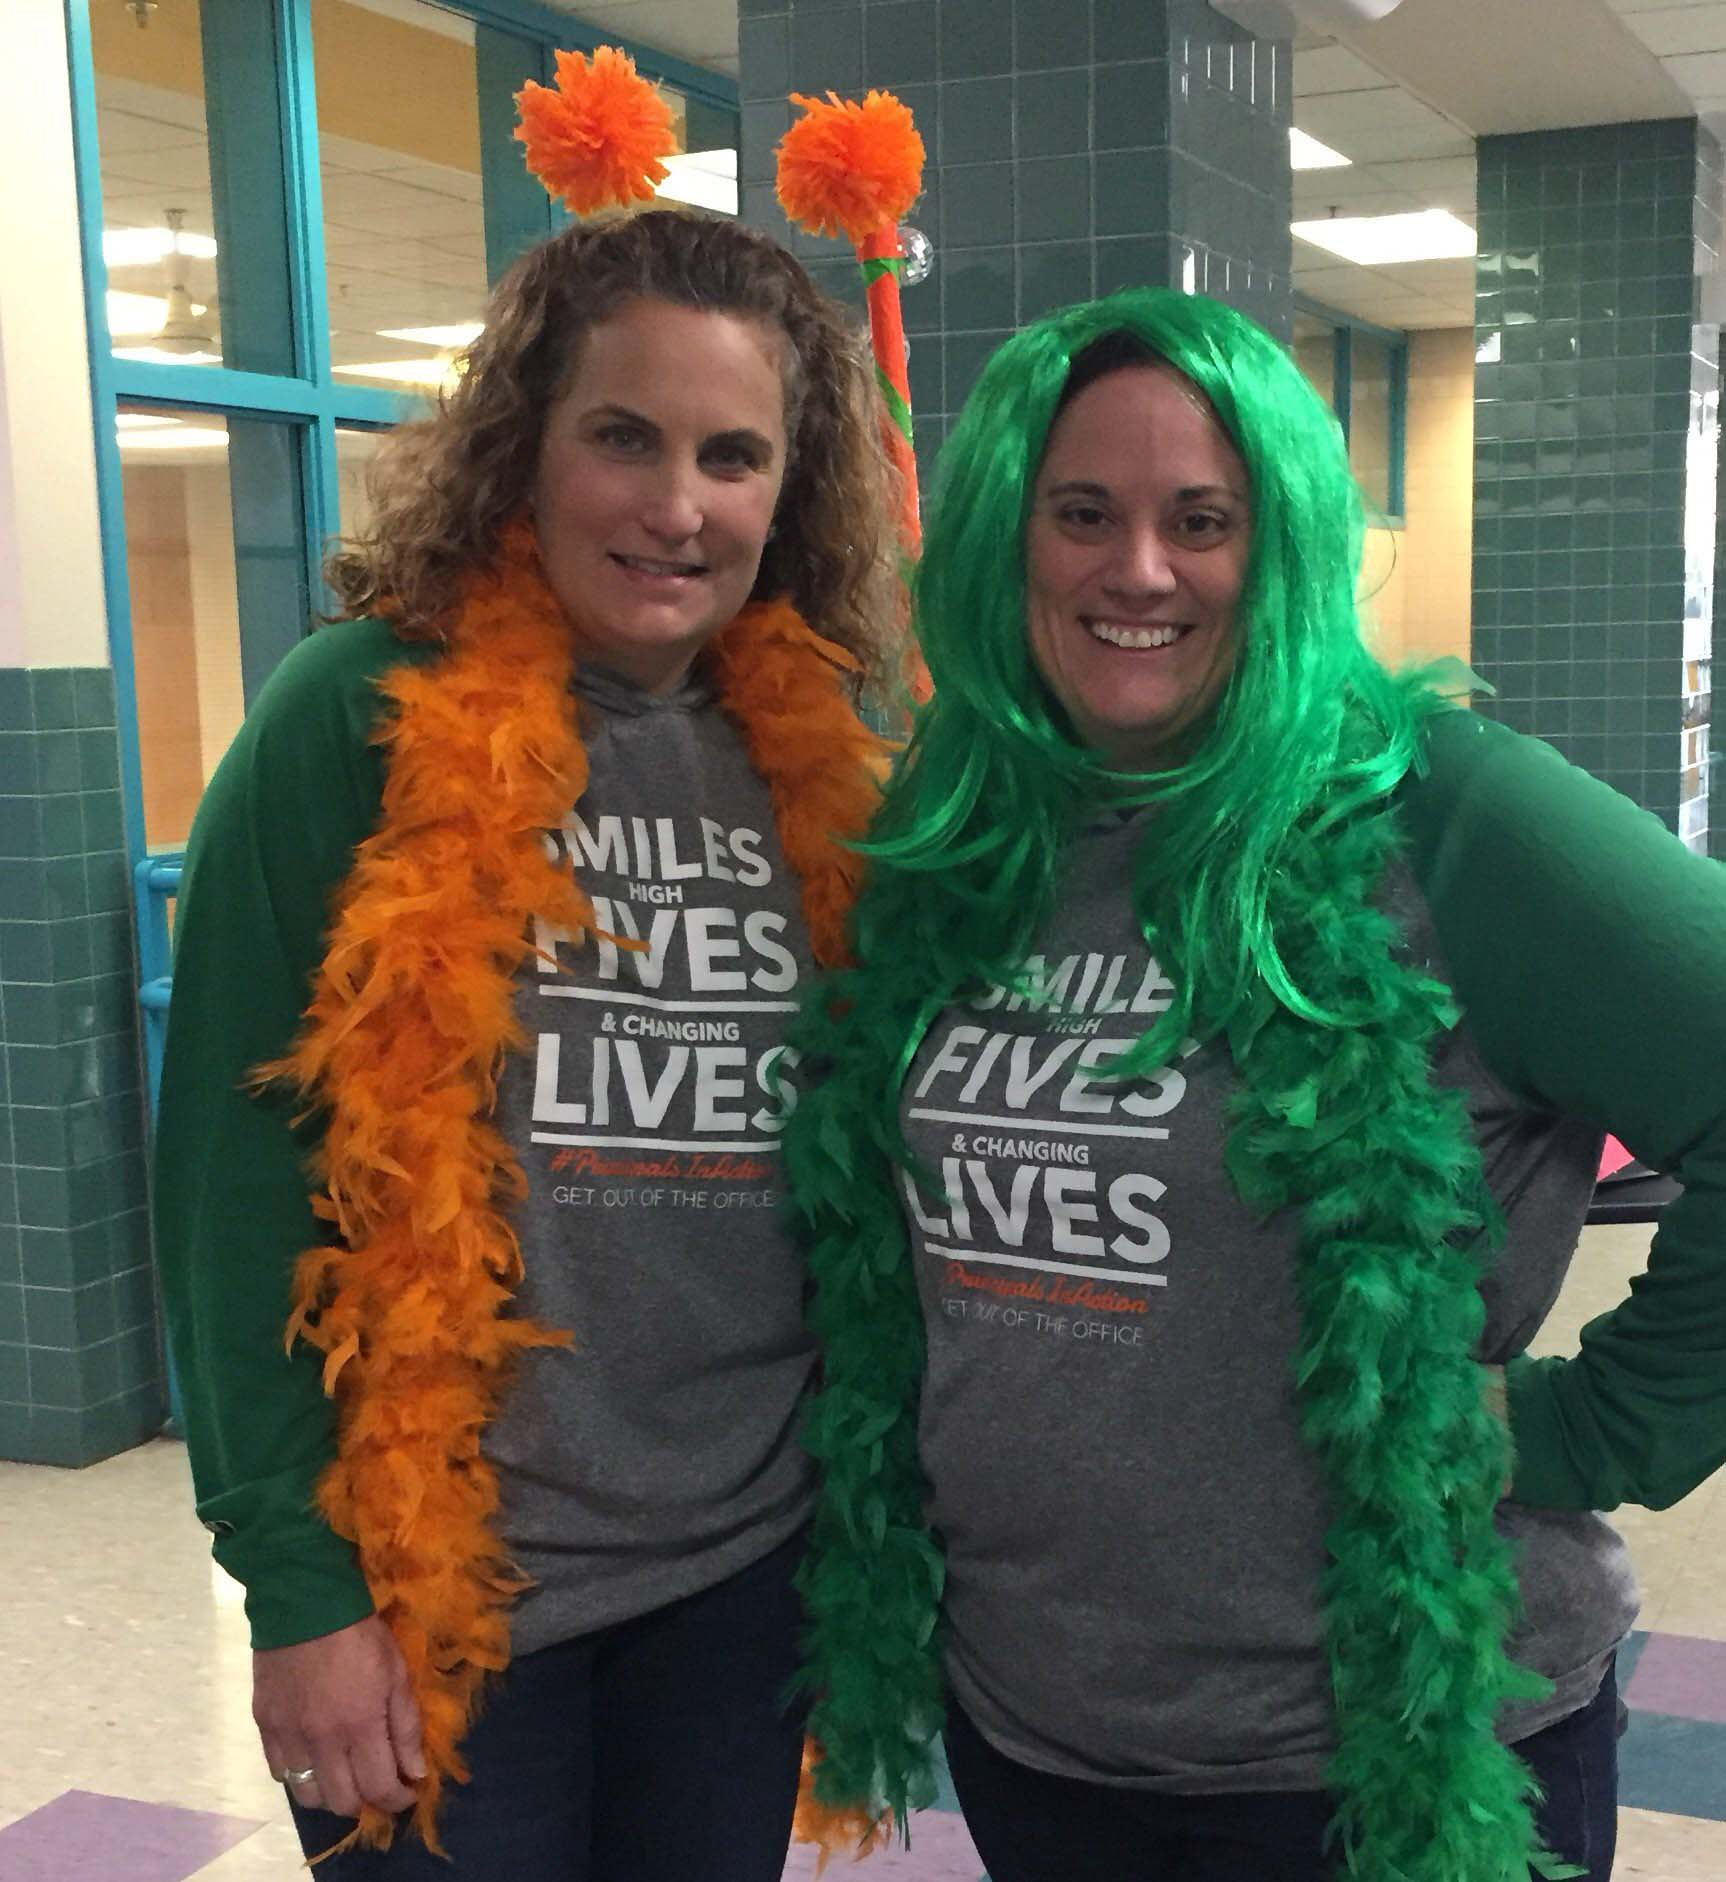 Ms. Bilello with colleague dressed up in costume.